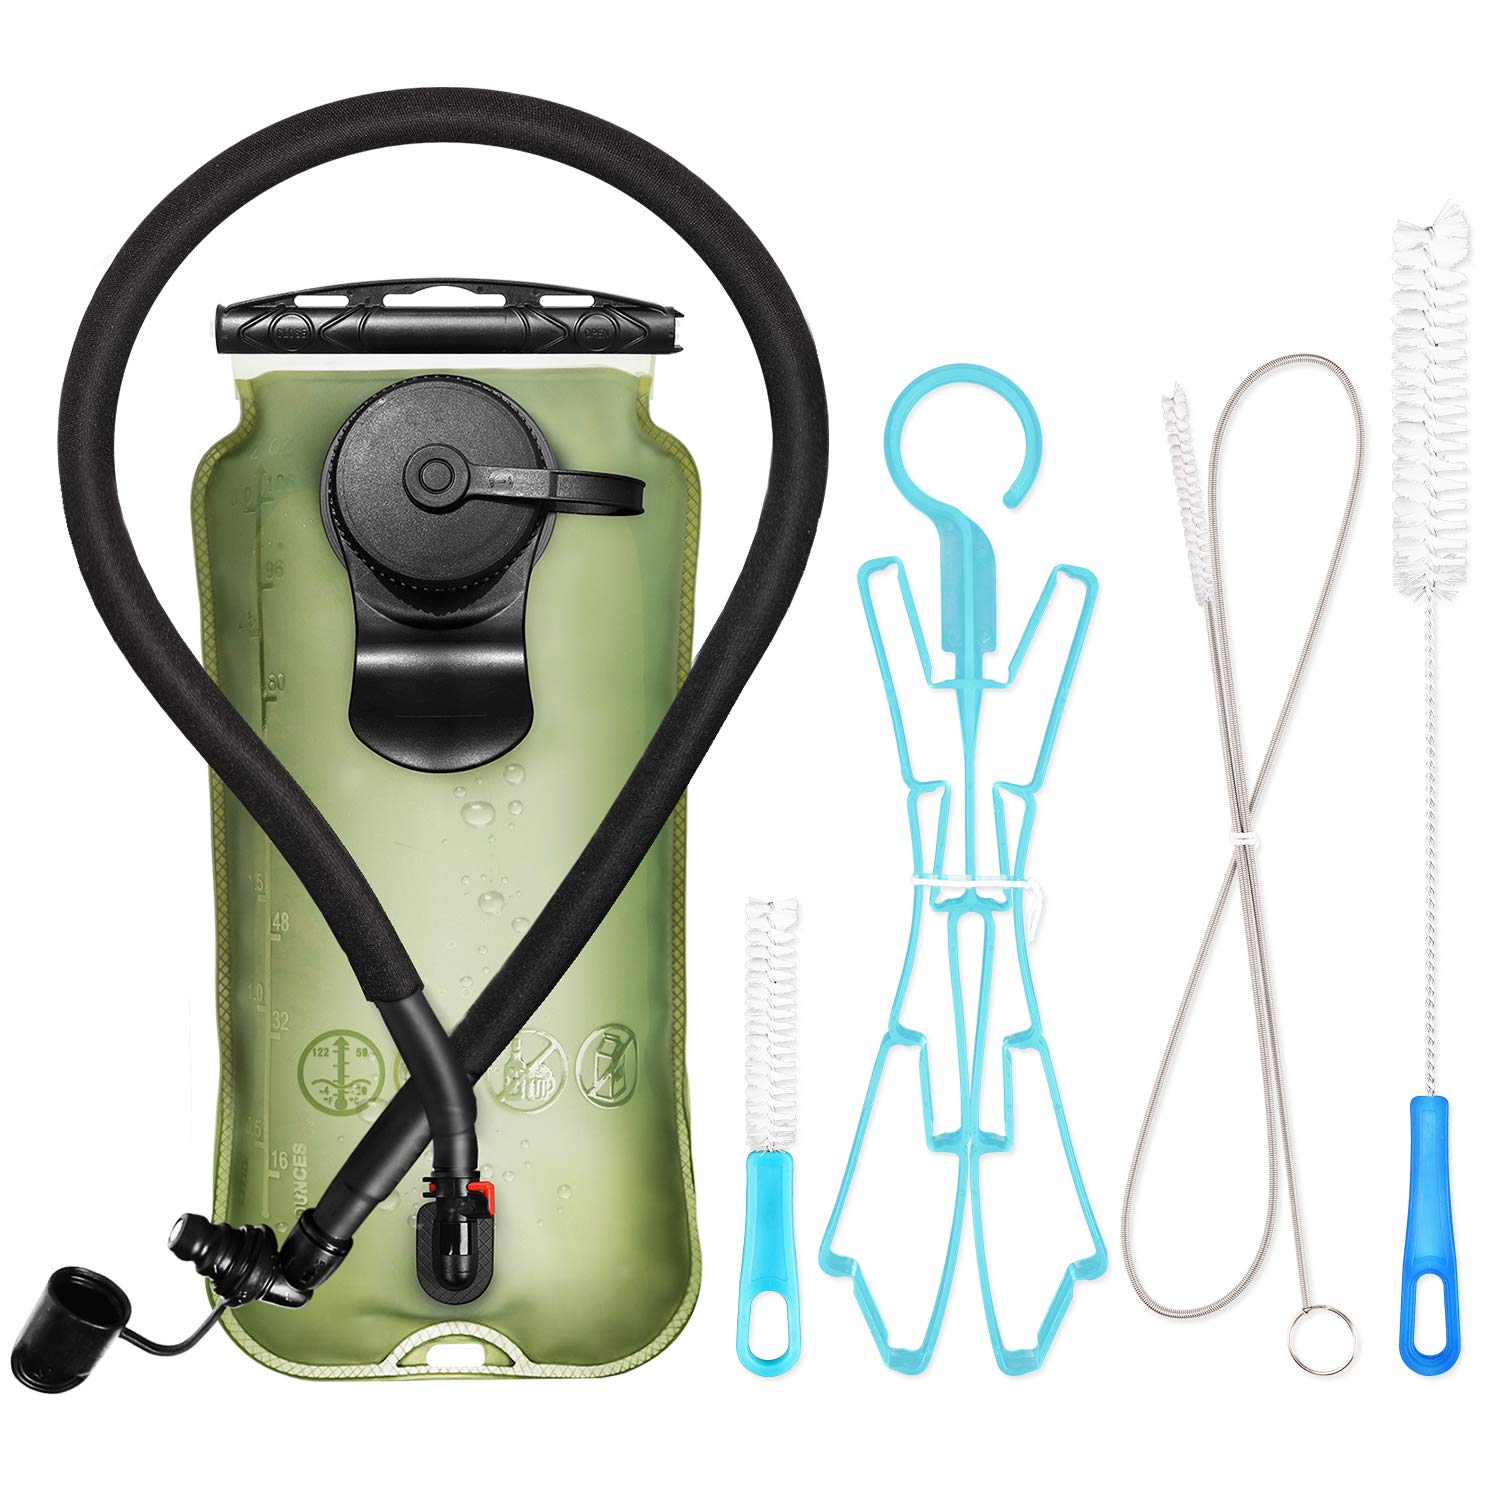 Leader Accessories Hydration Bladder Green 3 Liter Water Reservoir Water Bladder Hydration Pack Bladder FDA Approved Tasteless and BPA-Free TPU Material Large Opening Quick Release Tube (3l with kit) by Leader Accessories